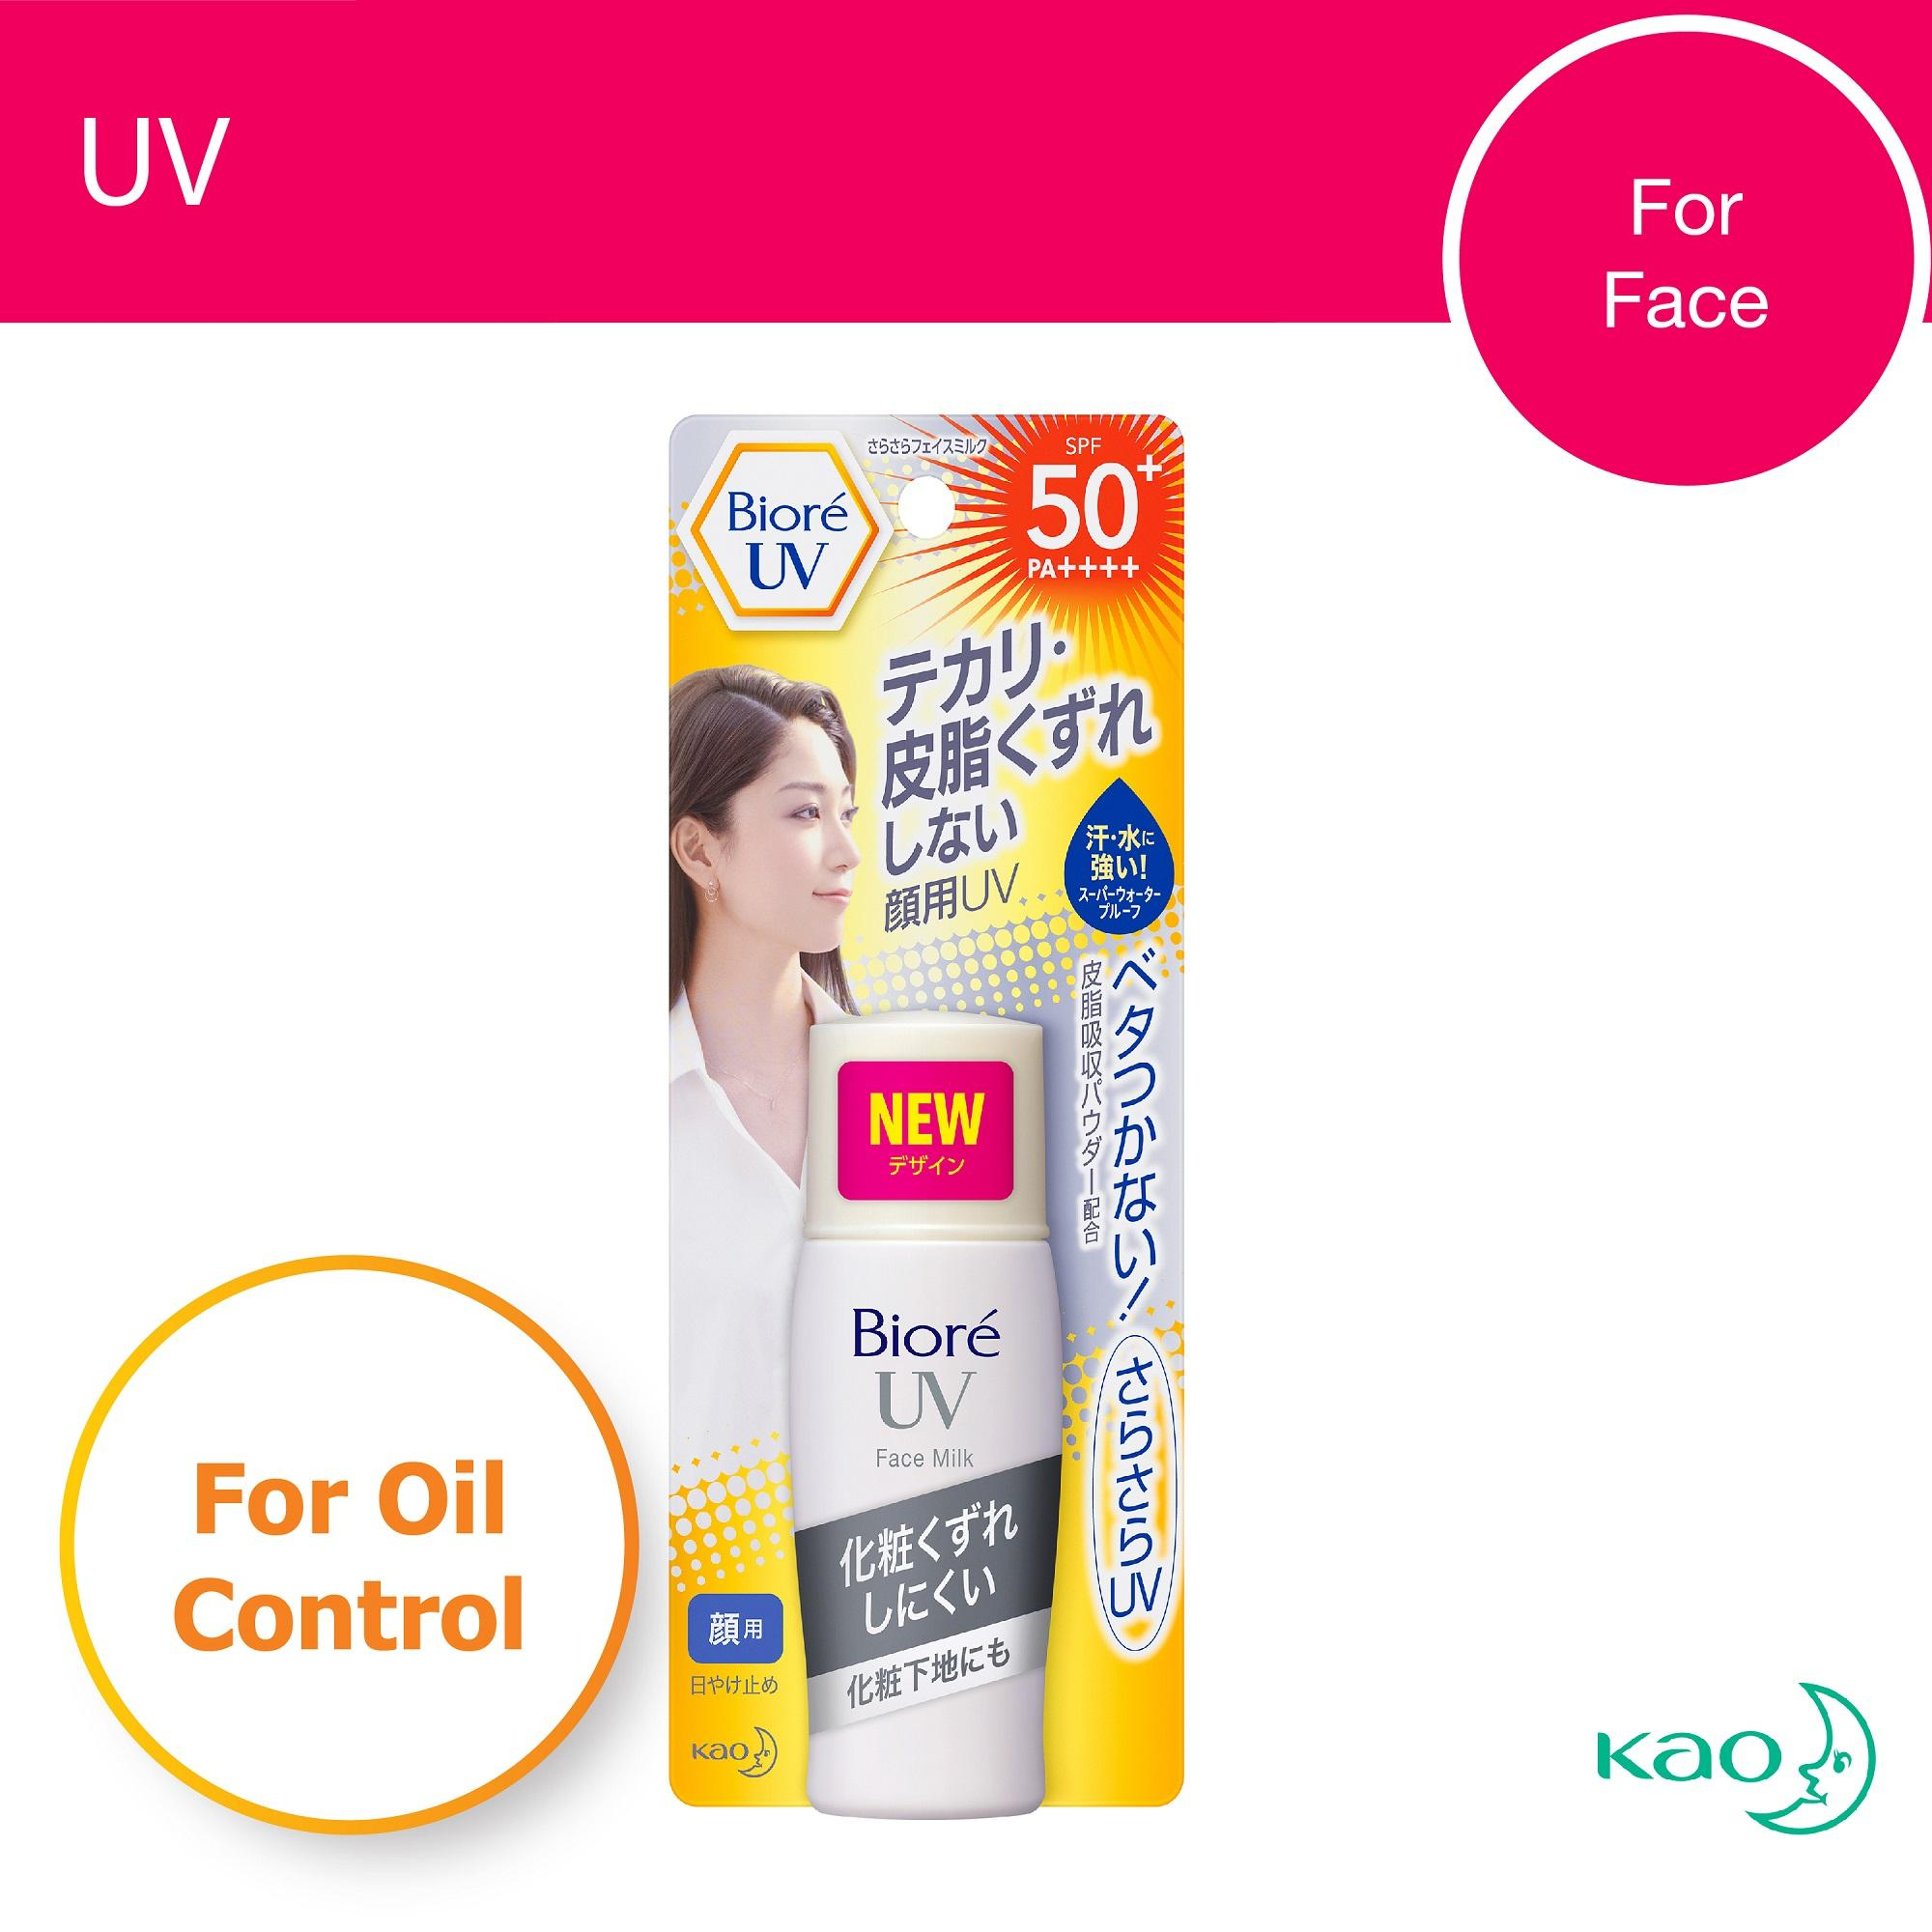 Biore Uv Perfect Face Milk Spf 50+ Pa++++ 30ml By Kao.